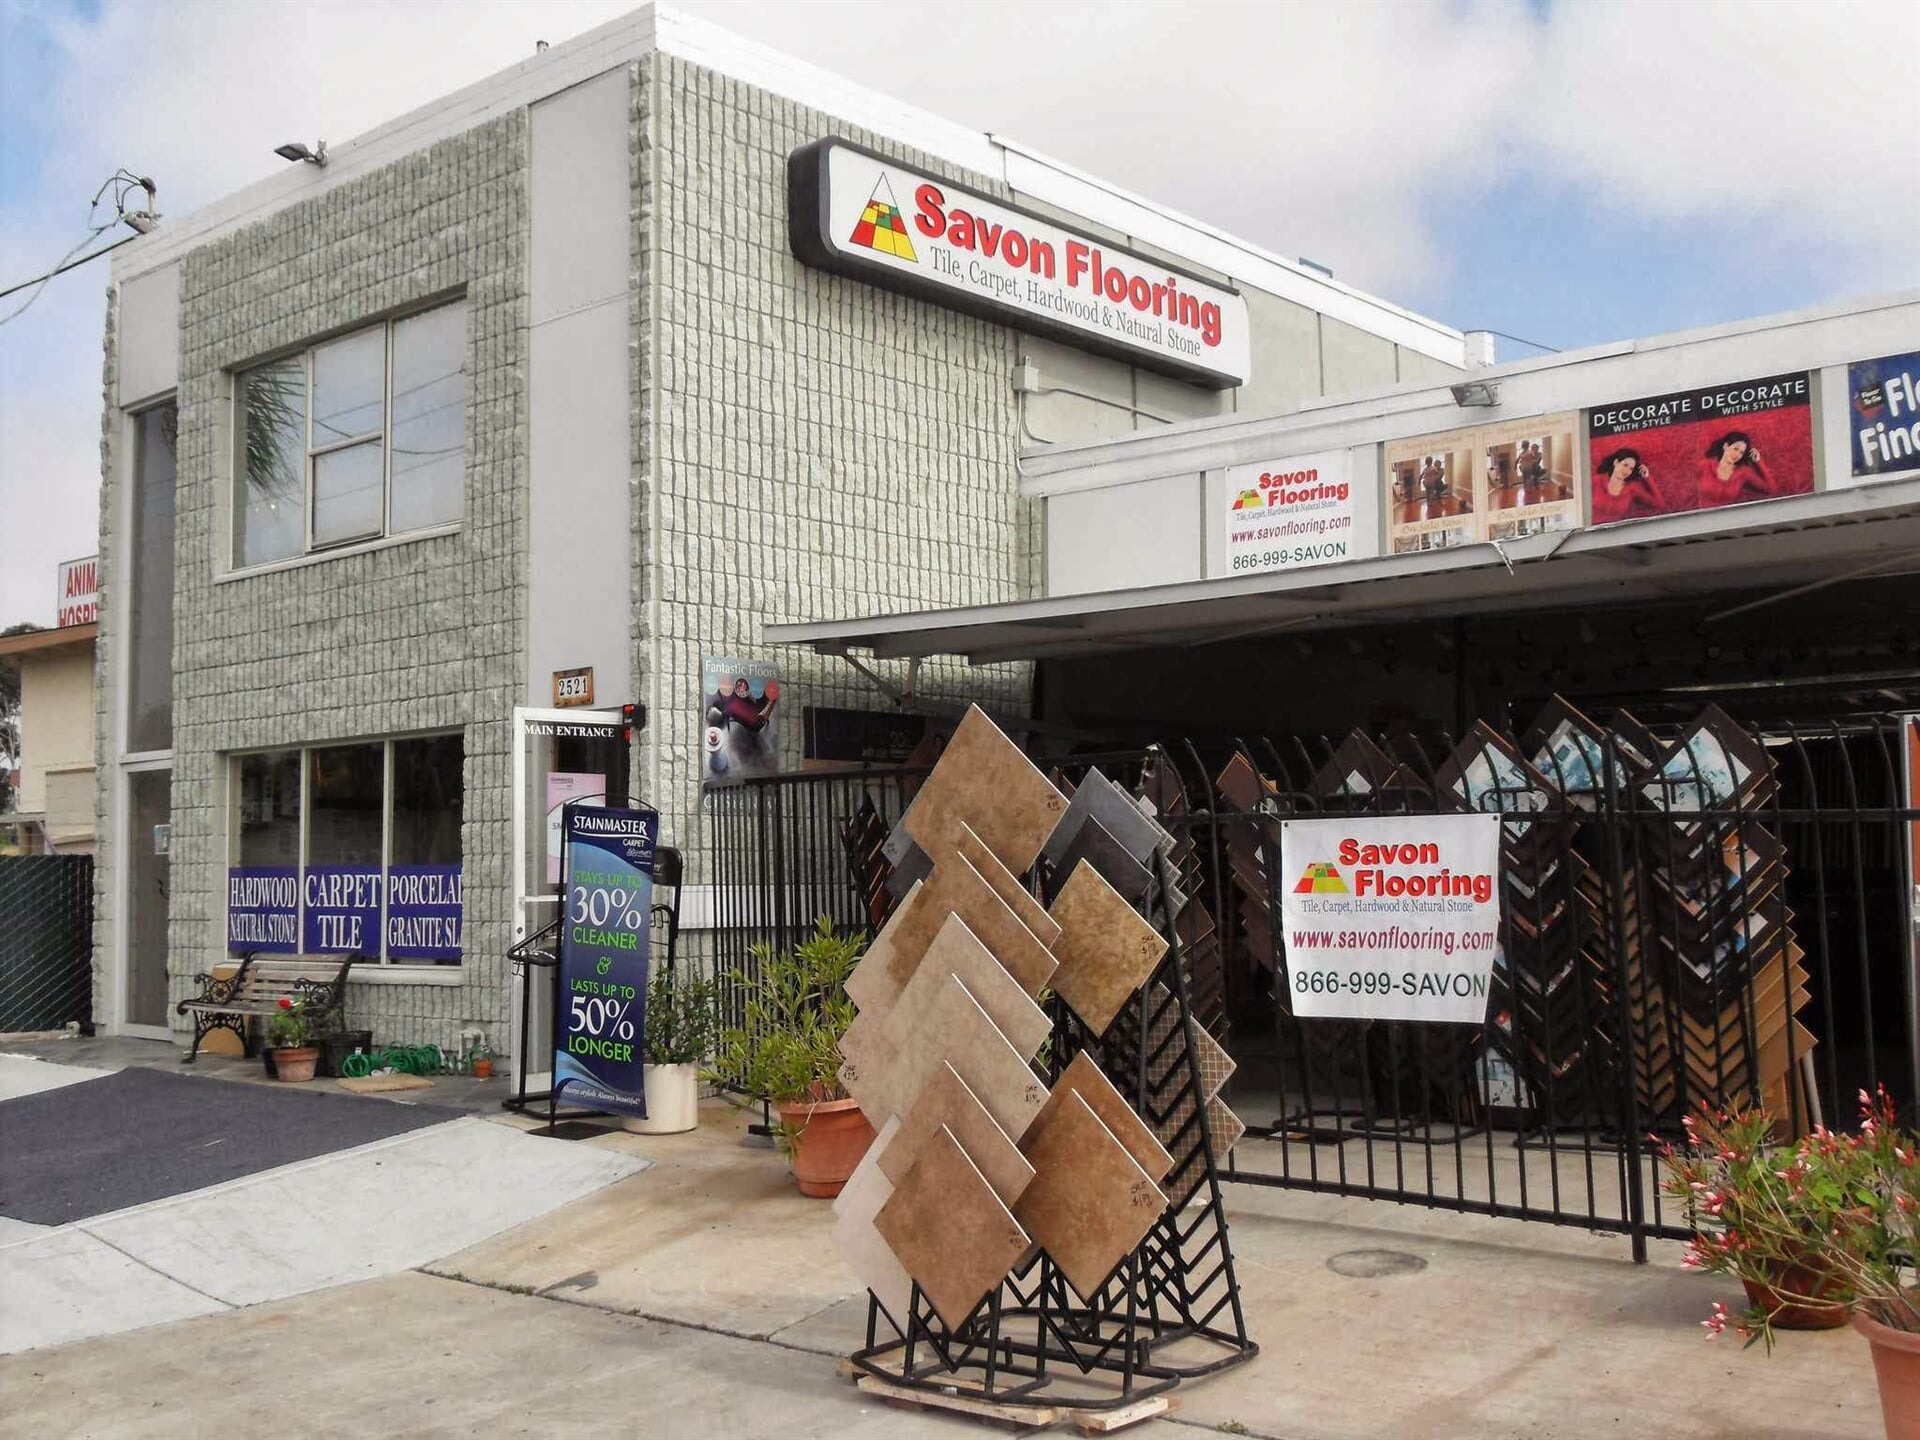 The Savon Flooring showroom in North County, CA